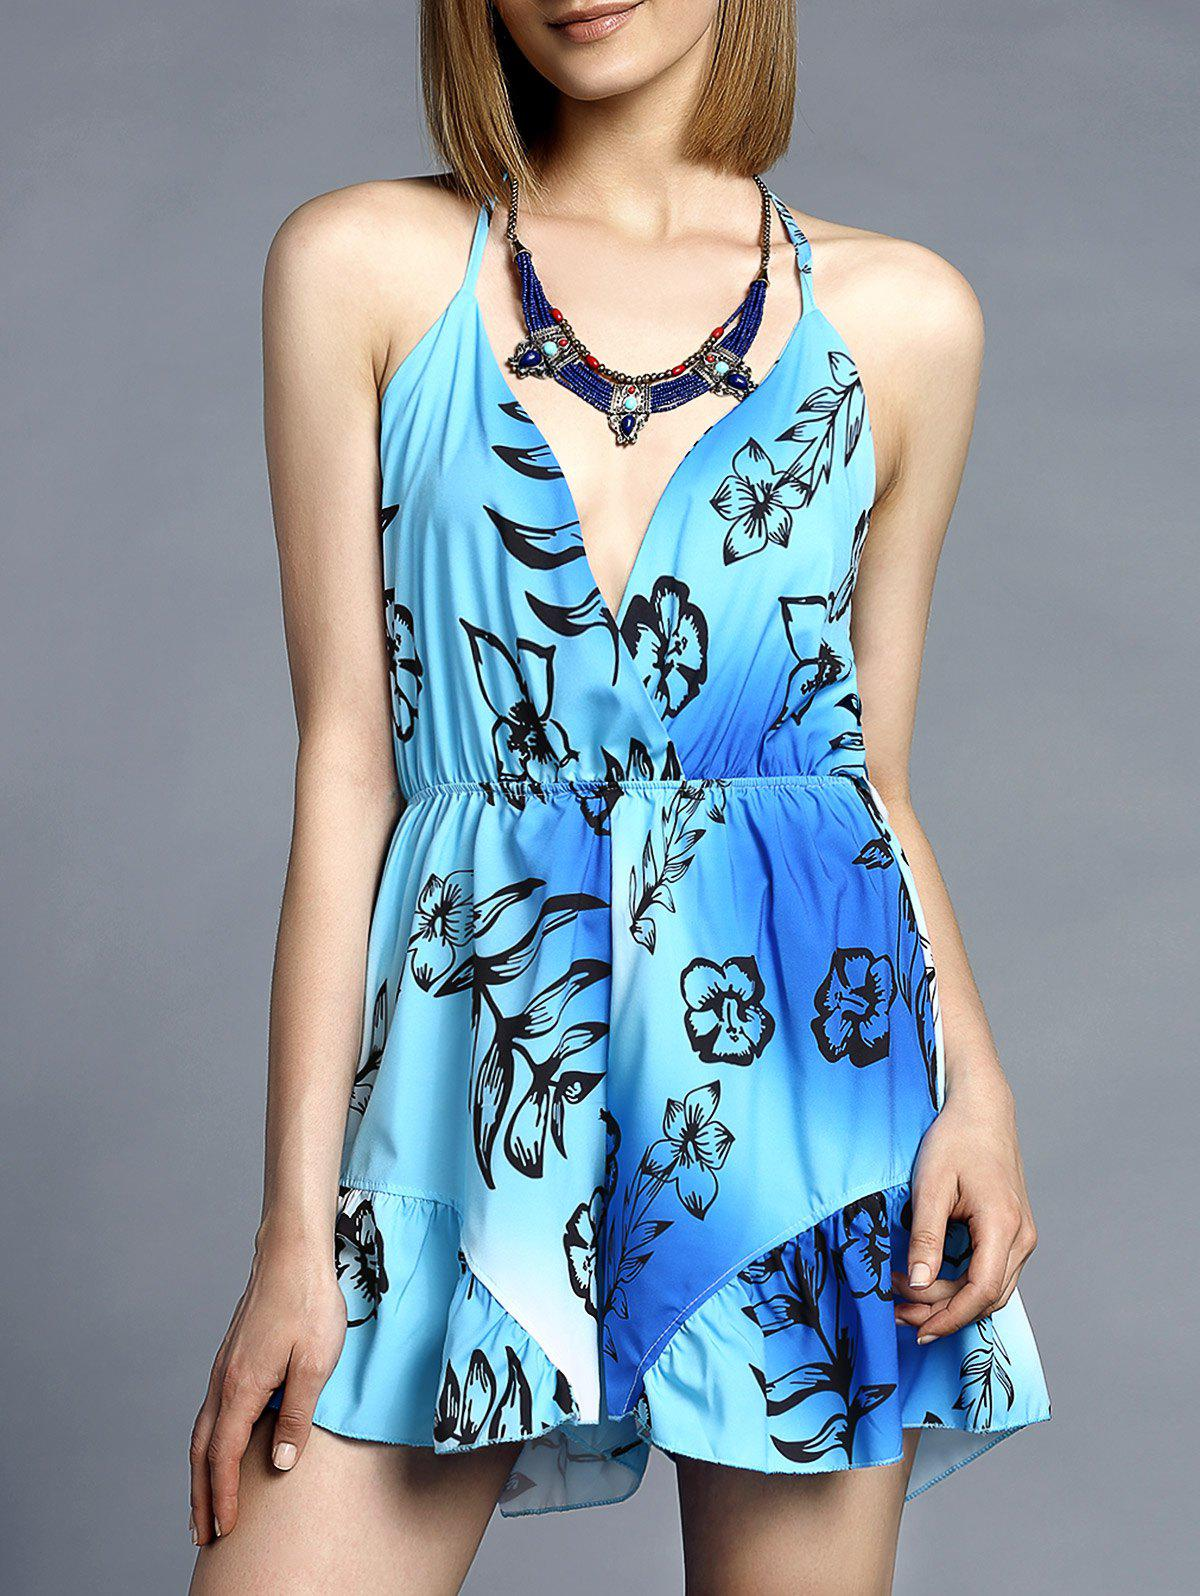 Sweet V-Neck Spaghetti Strap Floral Print Romper For Women - BLUE/GREEN S